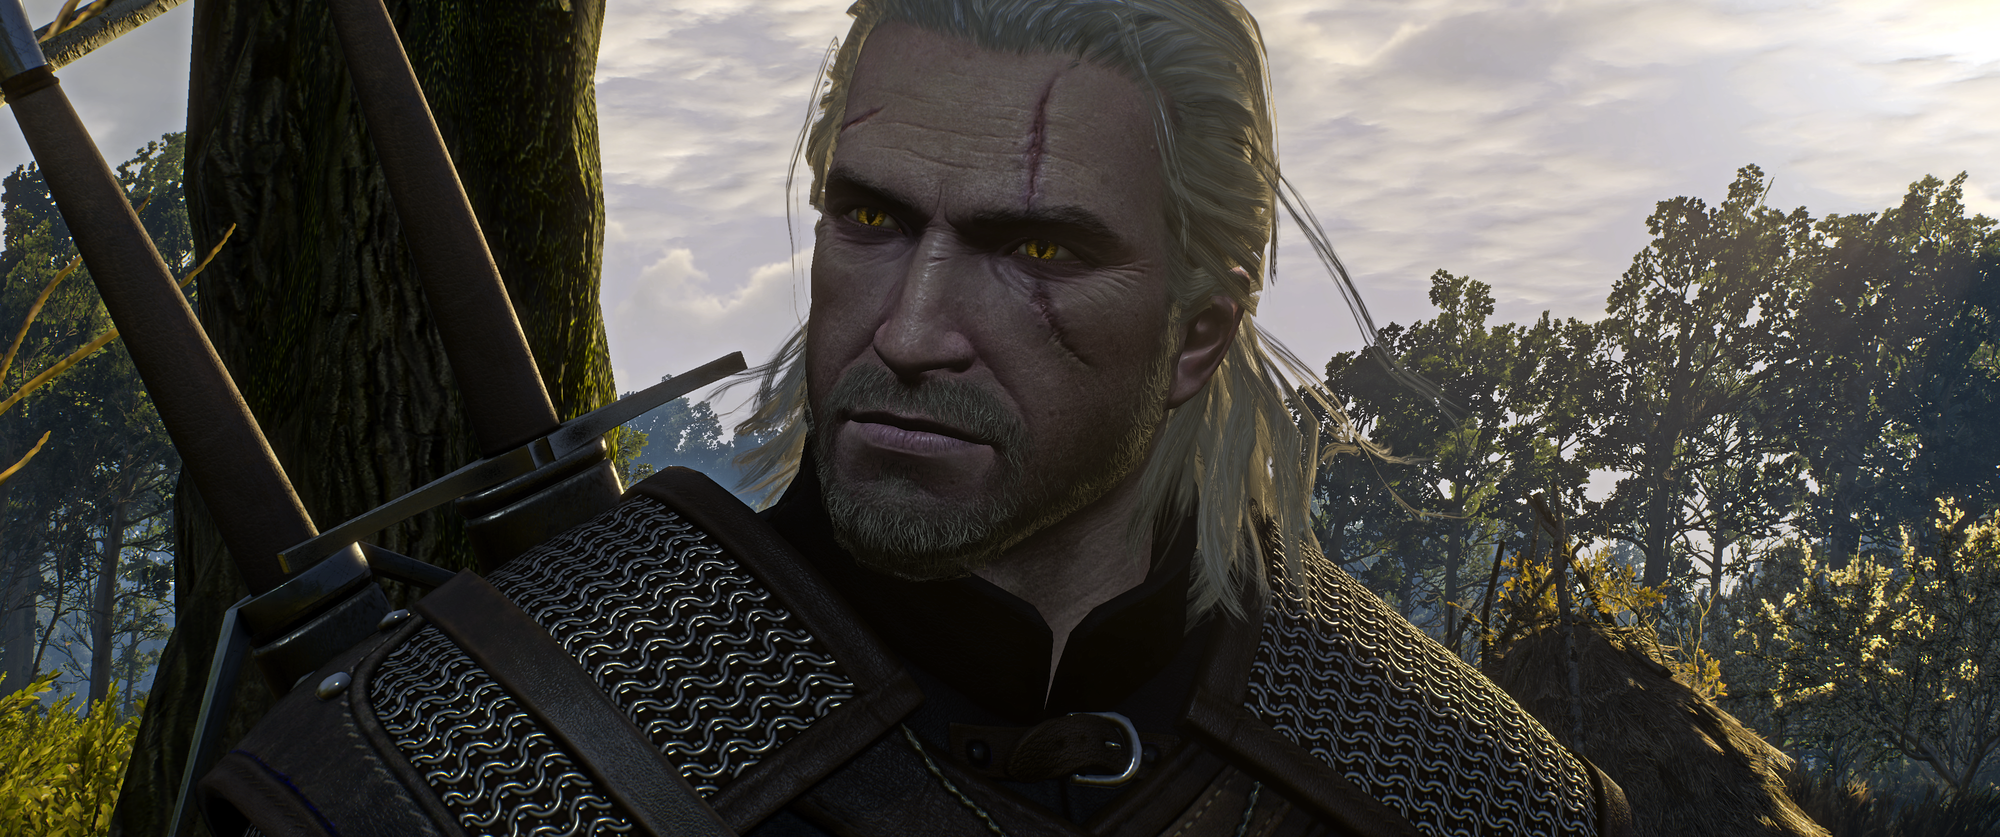 The Witcher 3 Screenshot 2019.01.02 - 20.33.49.16.png